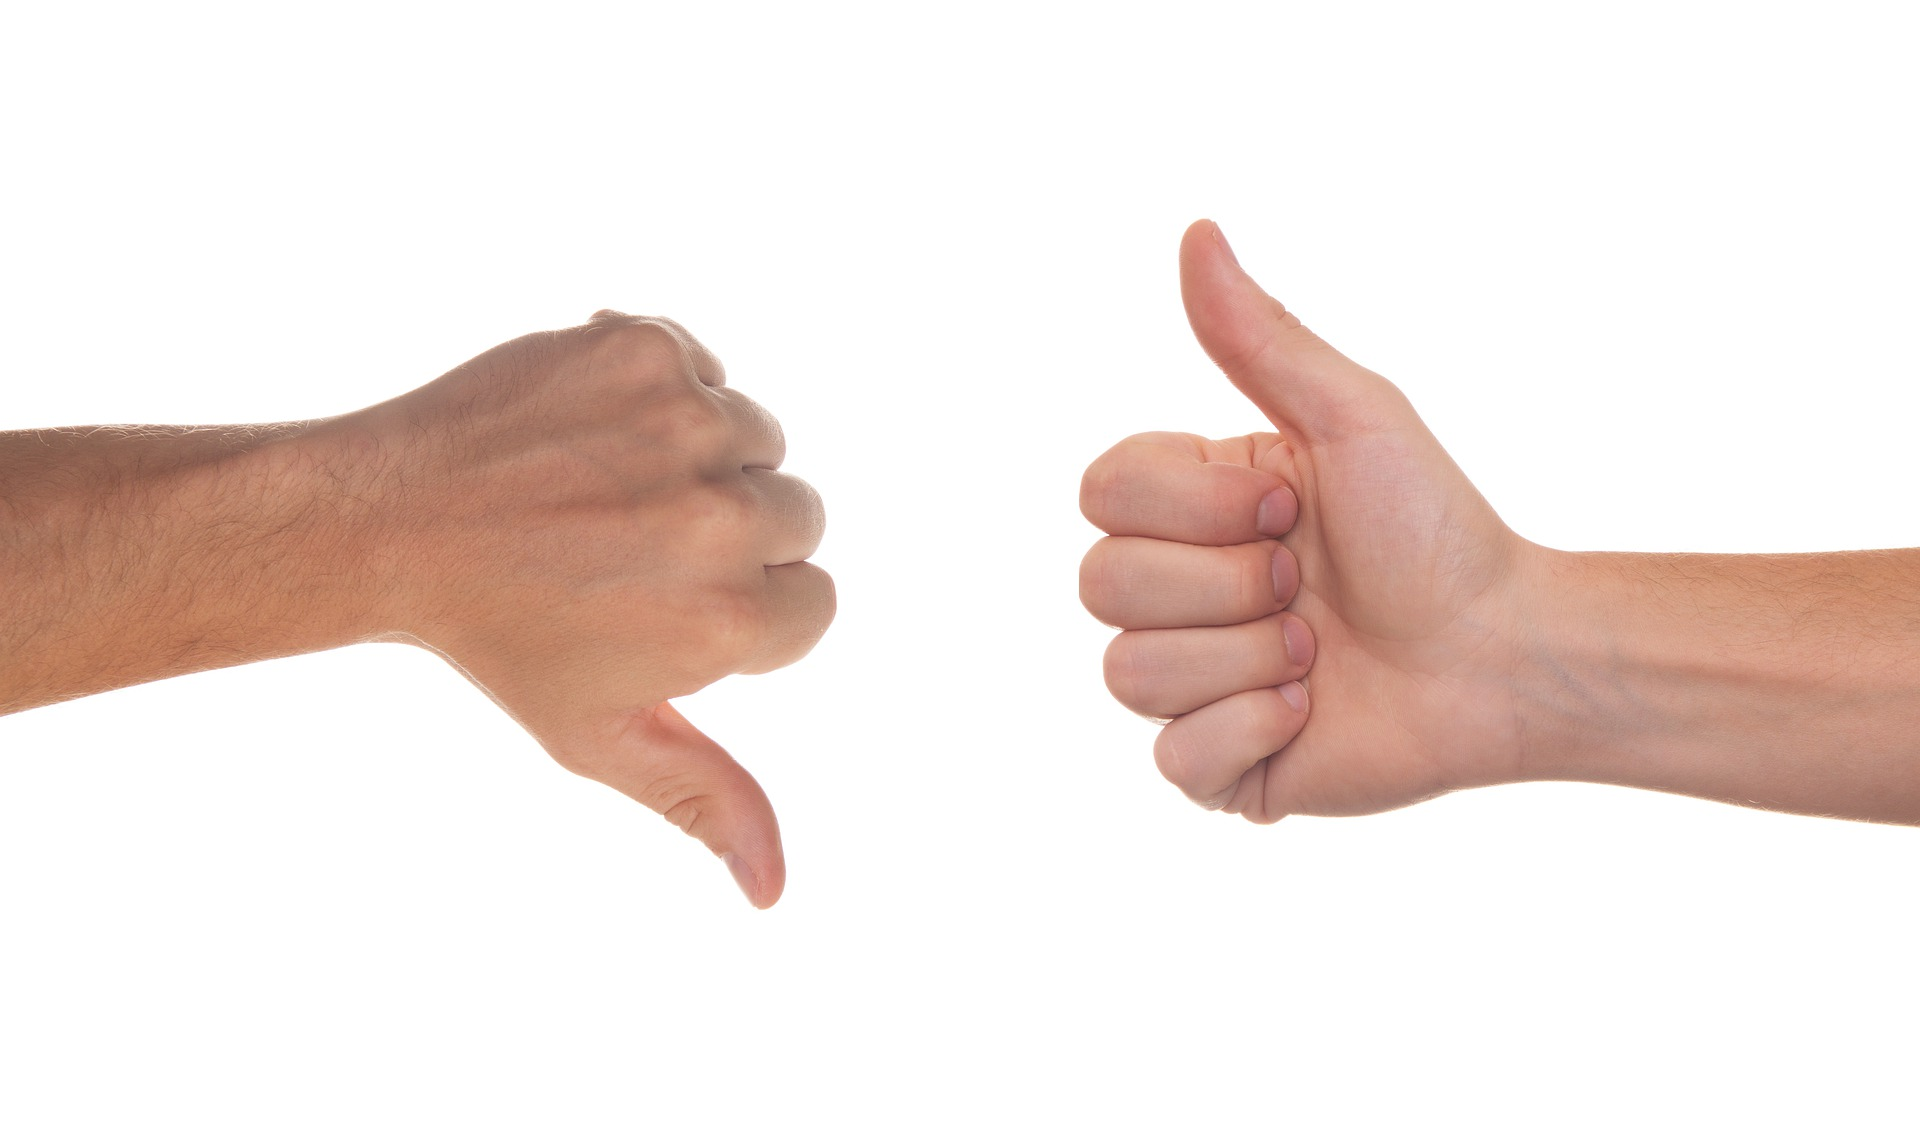 Thumbs up and thumbs down weighing pros and cons of paying with CareCredit